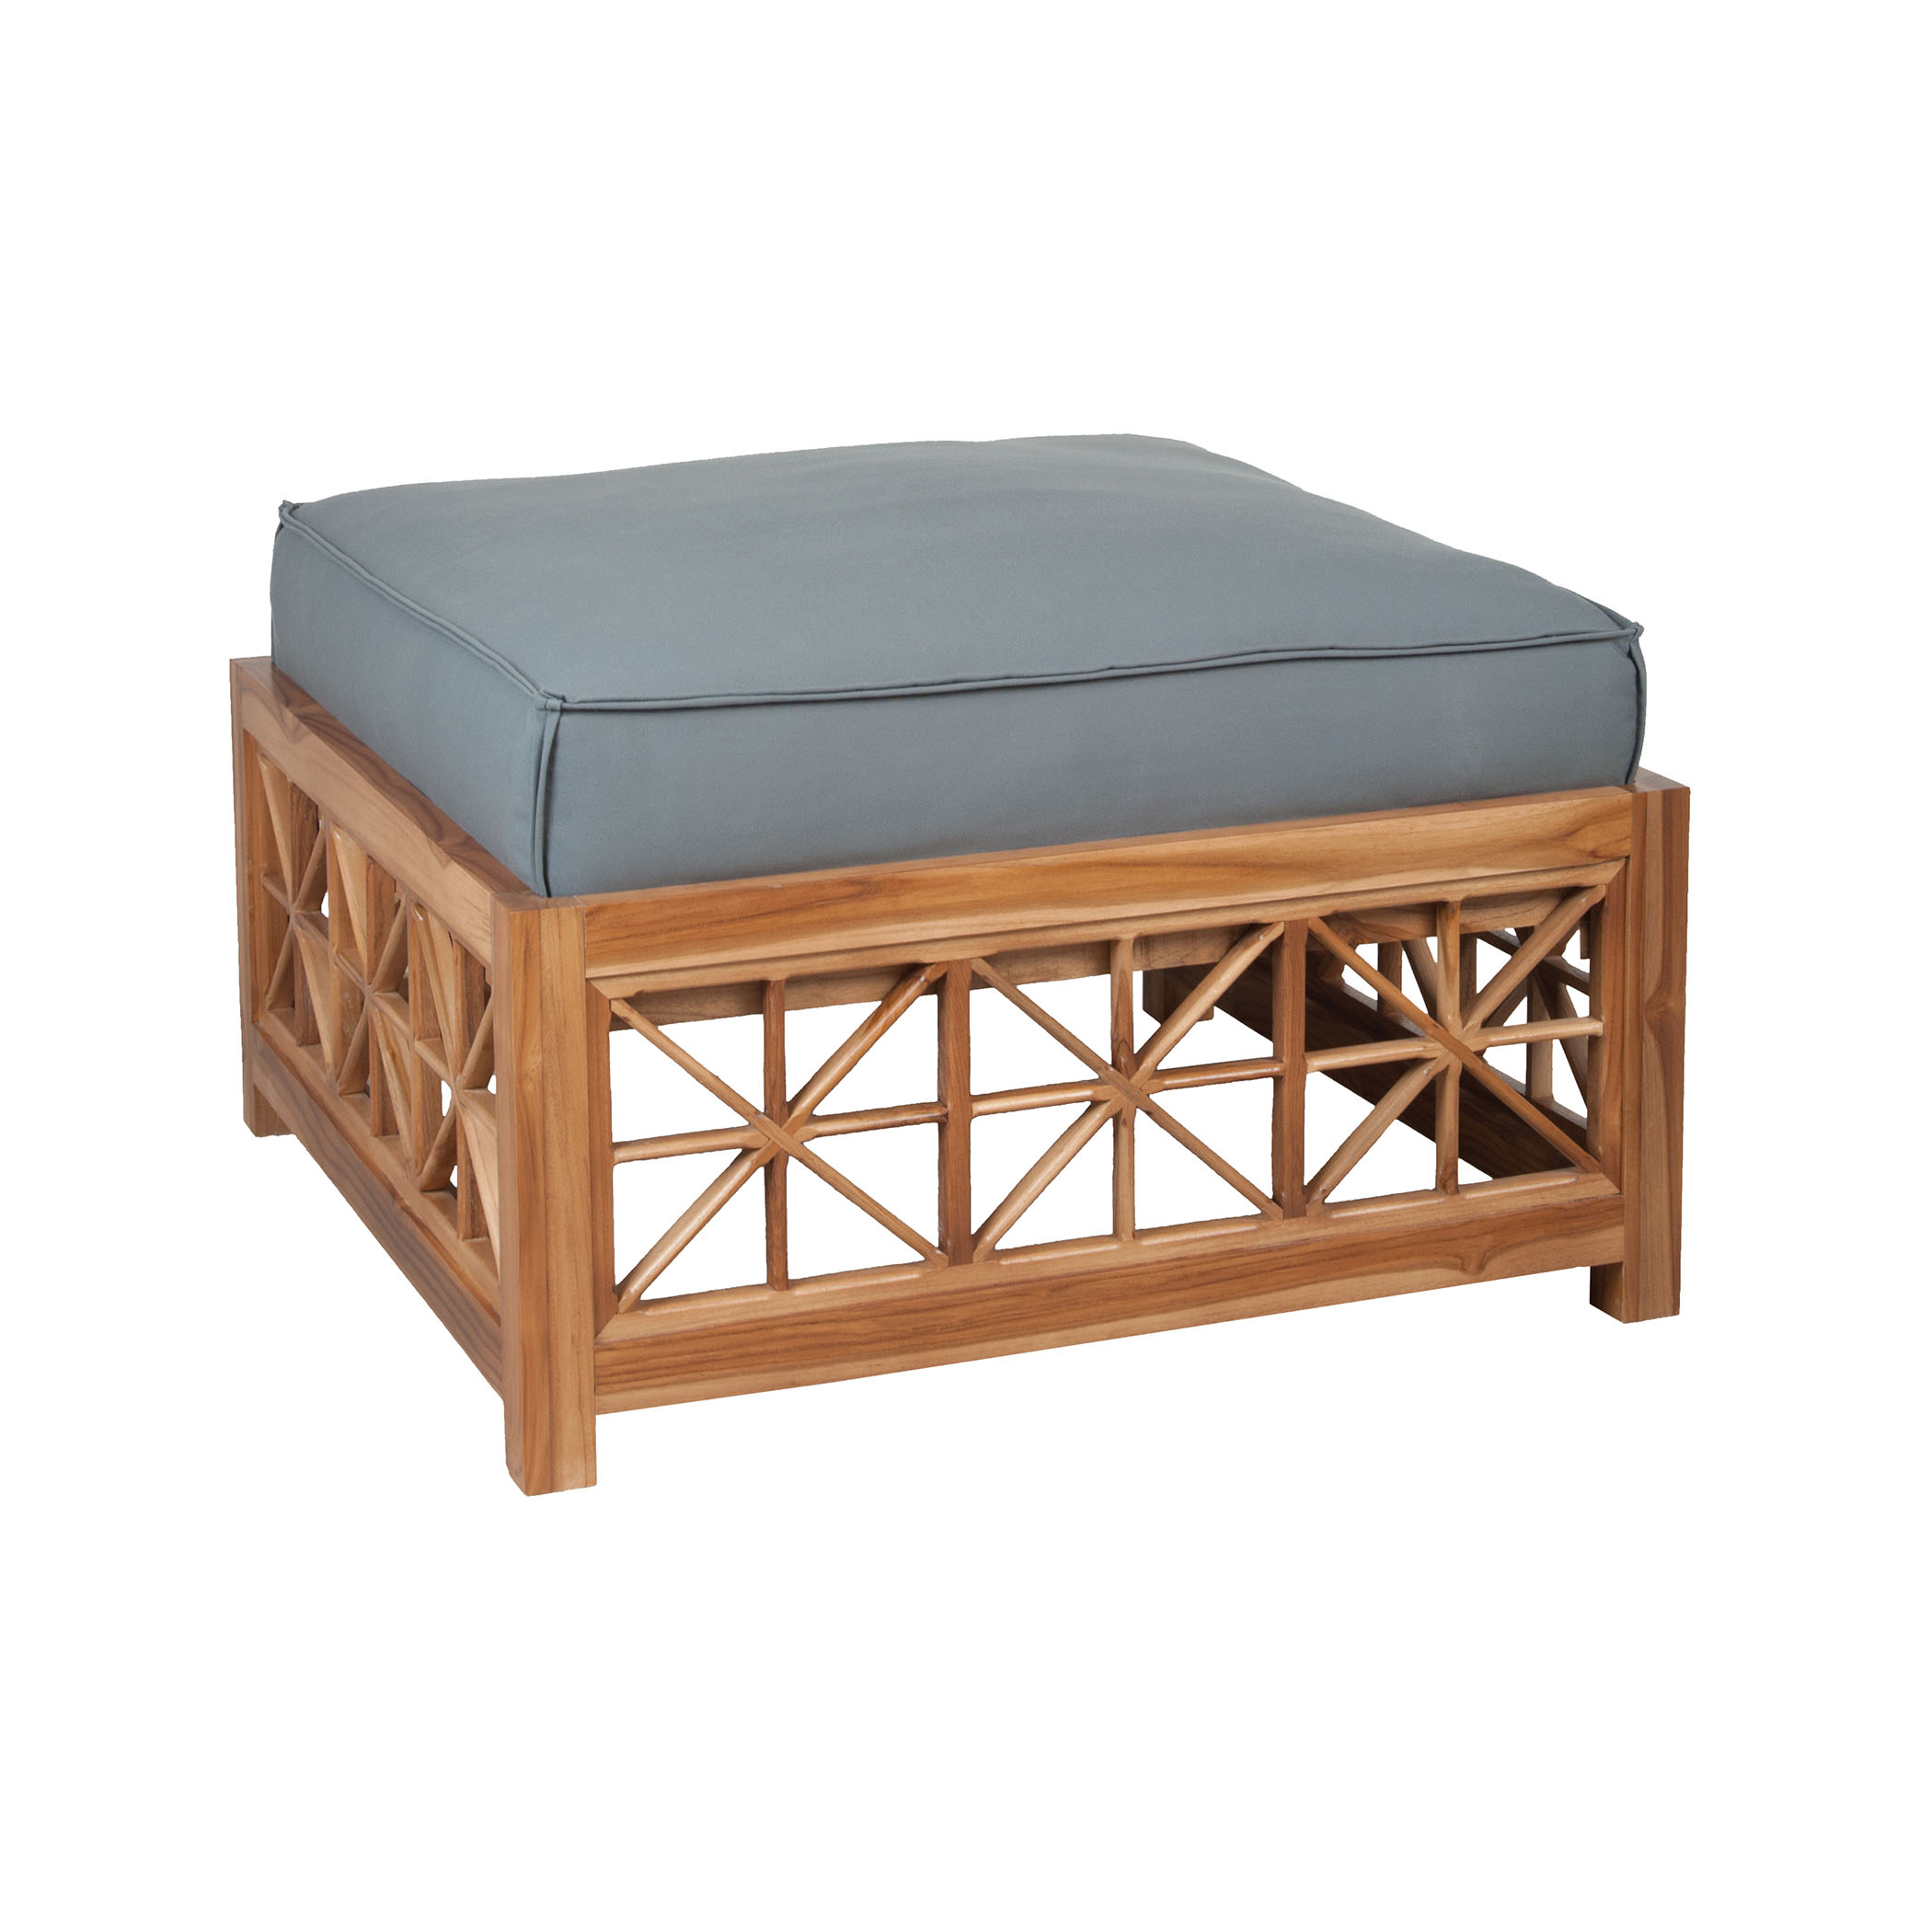 Teak Lattice Square Ottoman Cushion in Grey | Elk Home